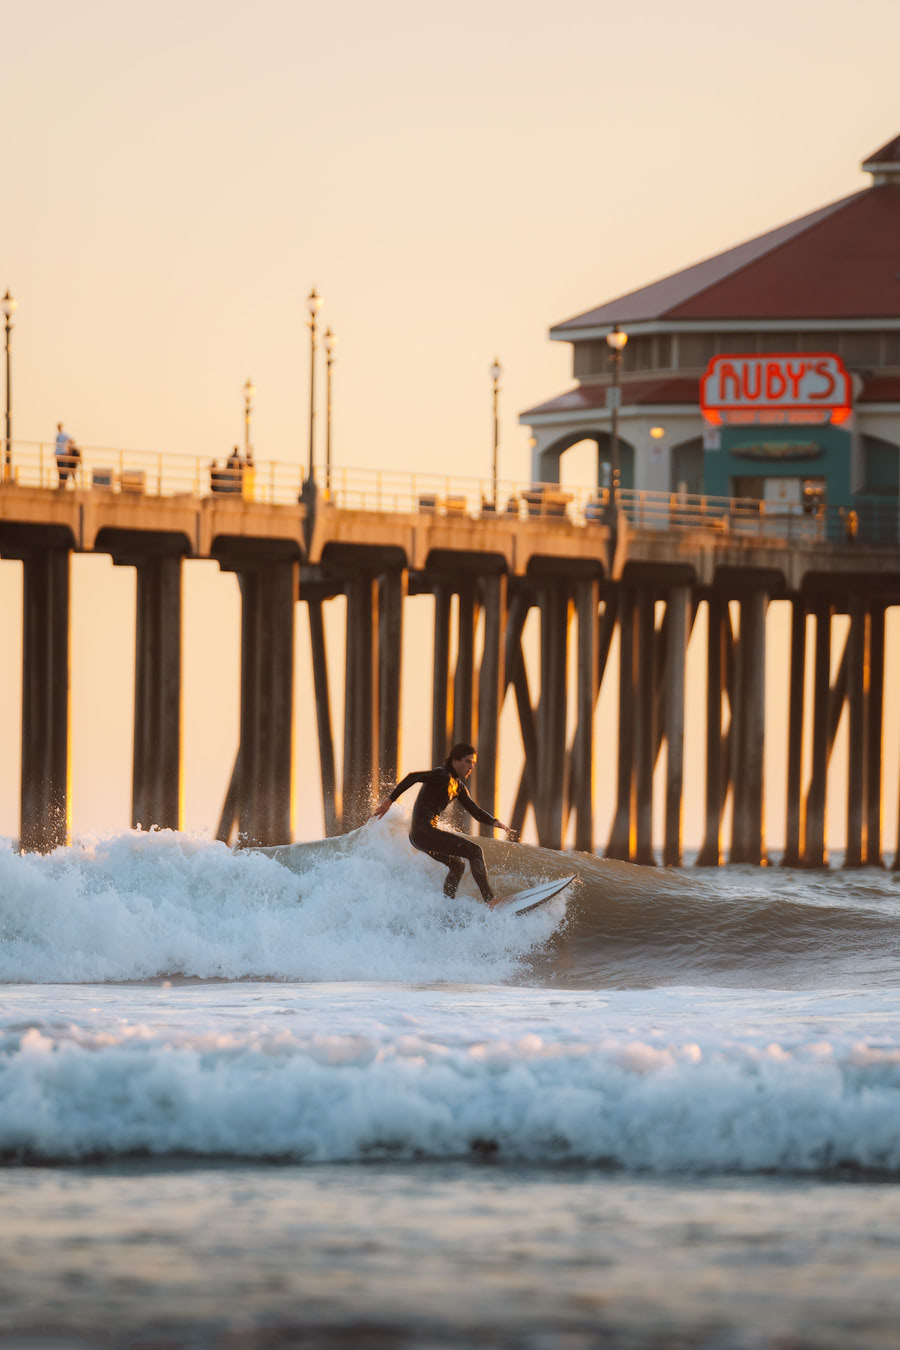 Orange County Travel Guide Everything You Need to Know- Huntington Beach Surfer 2